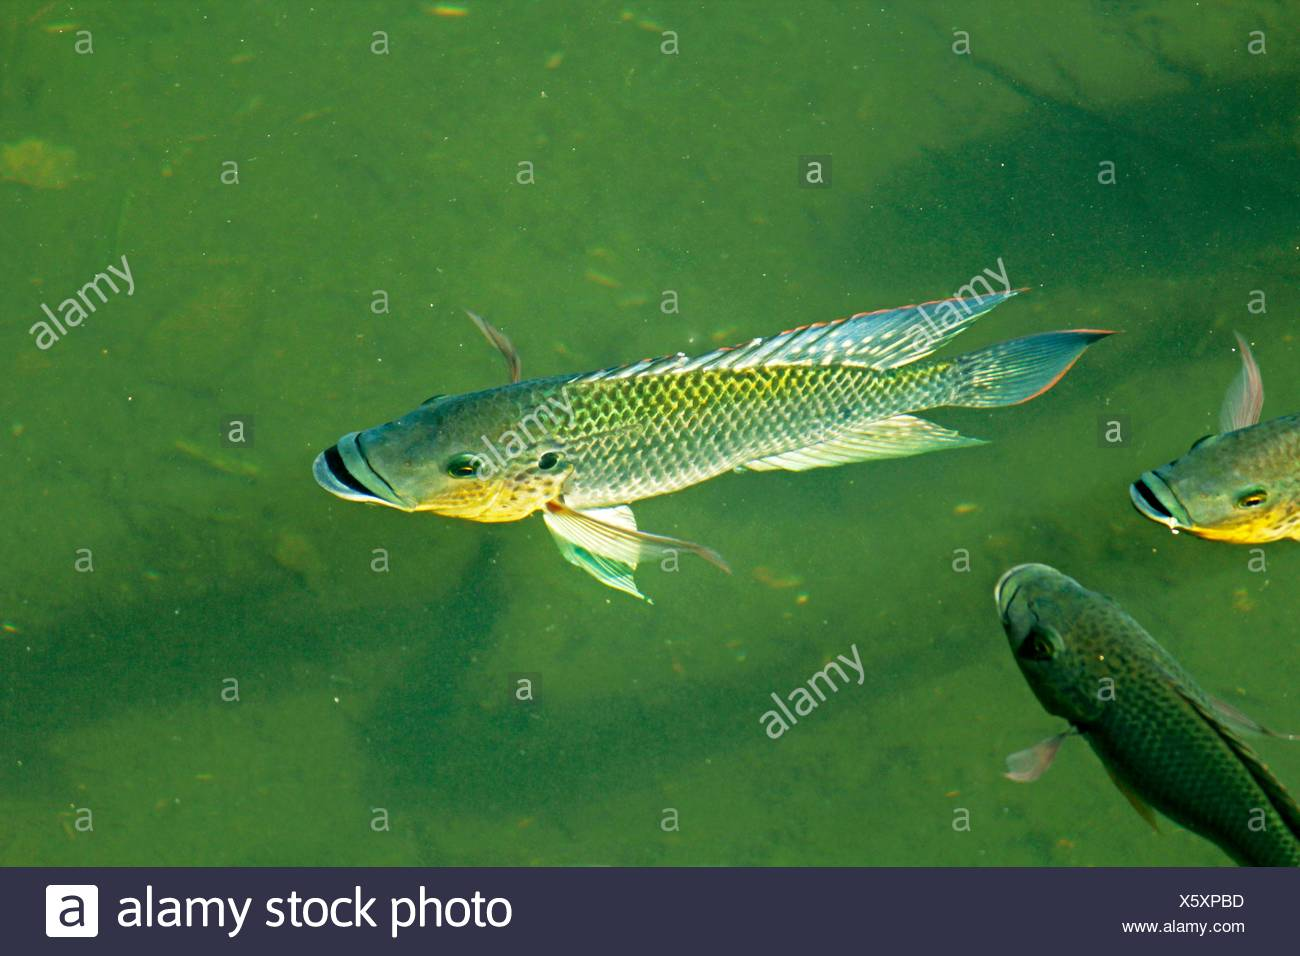 Blue Kurper Mozambique Tilapia Oreochromis Mossambicus Fishes In Water Pond Pune Maharashtra India